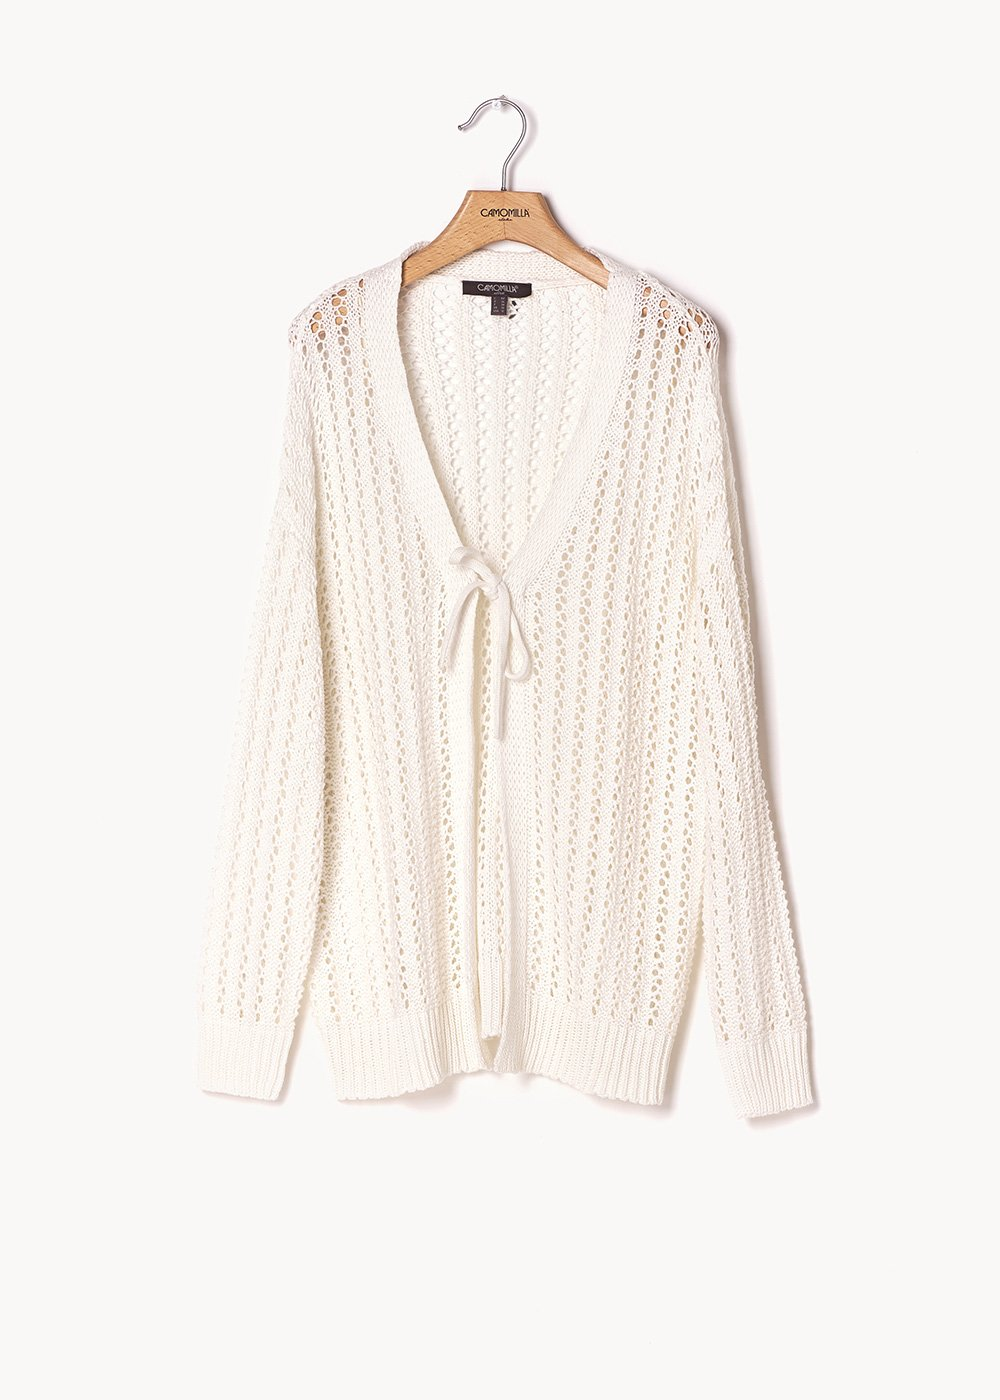 Caddy white openwork cardigan - White - Woman